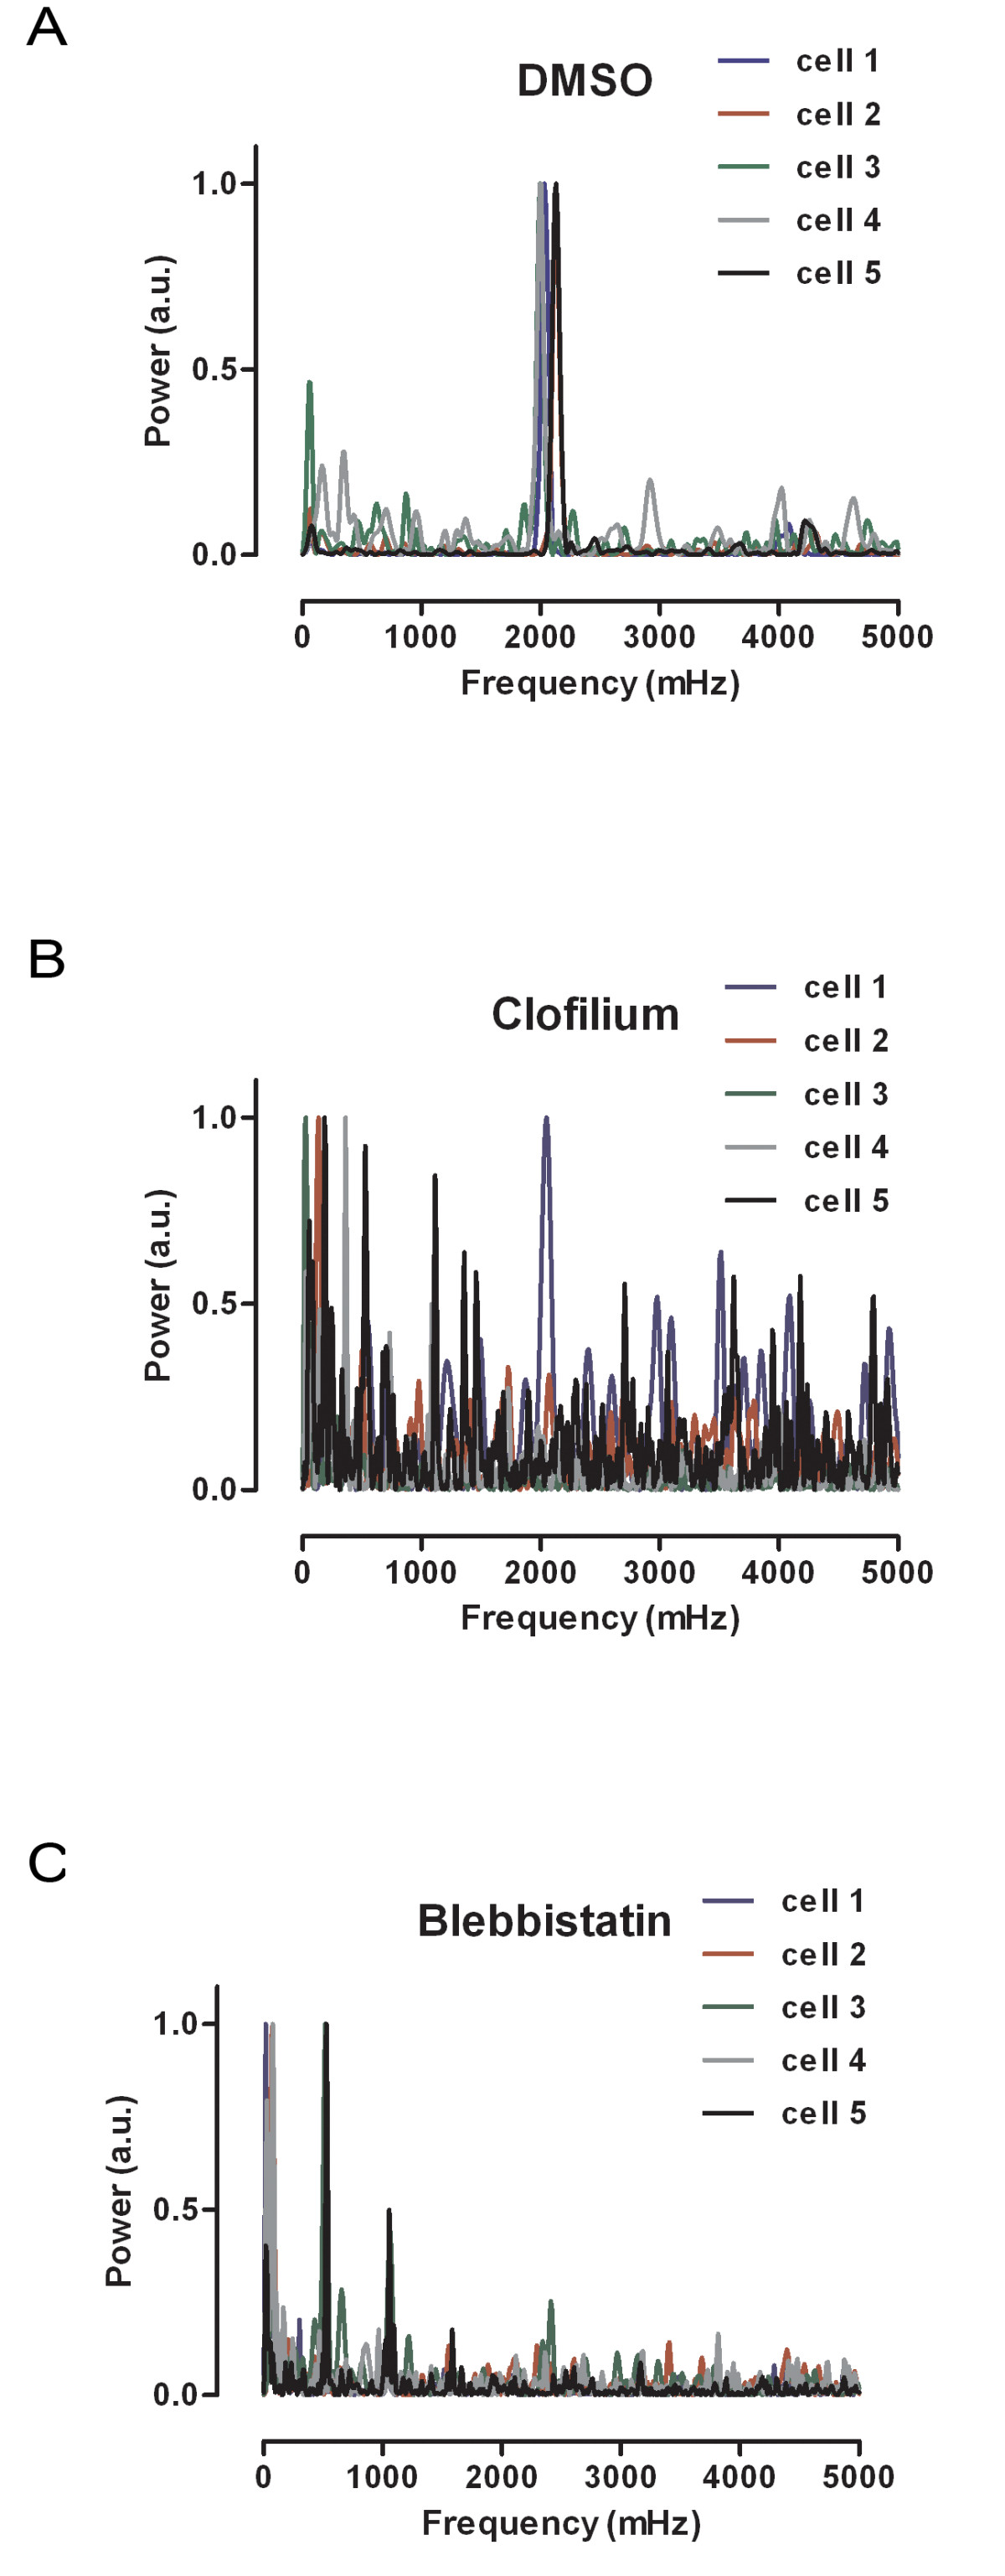 http://static-content.springer.com/image/art%3A10.1186%2F1472-6793-12-3/MediaObjects/12899_2011_Article_188_Fig3_HTML.jpg